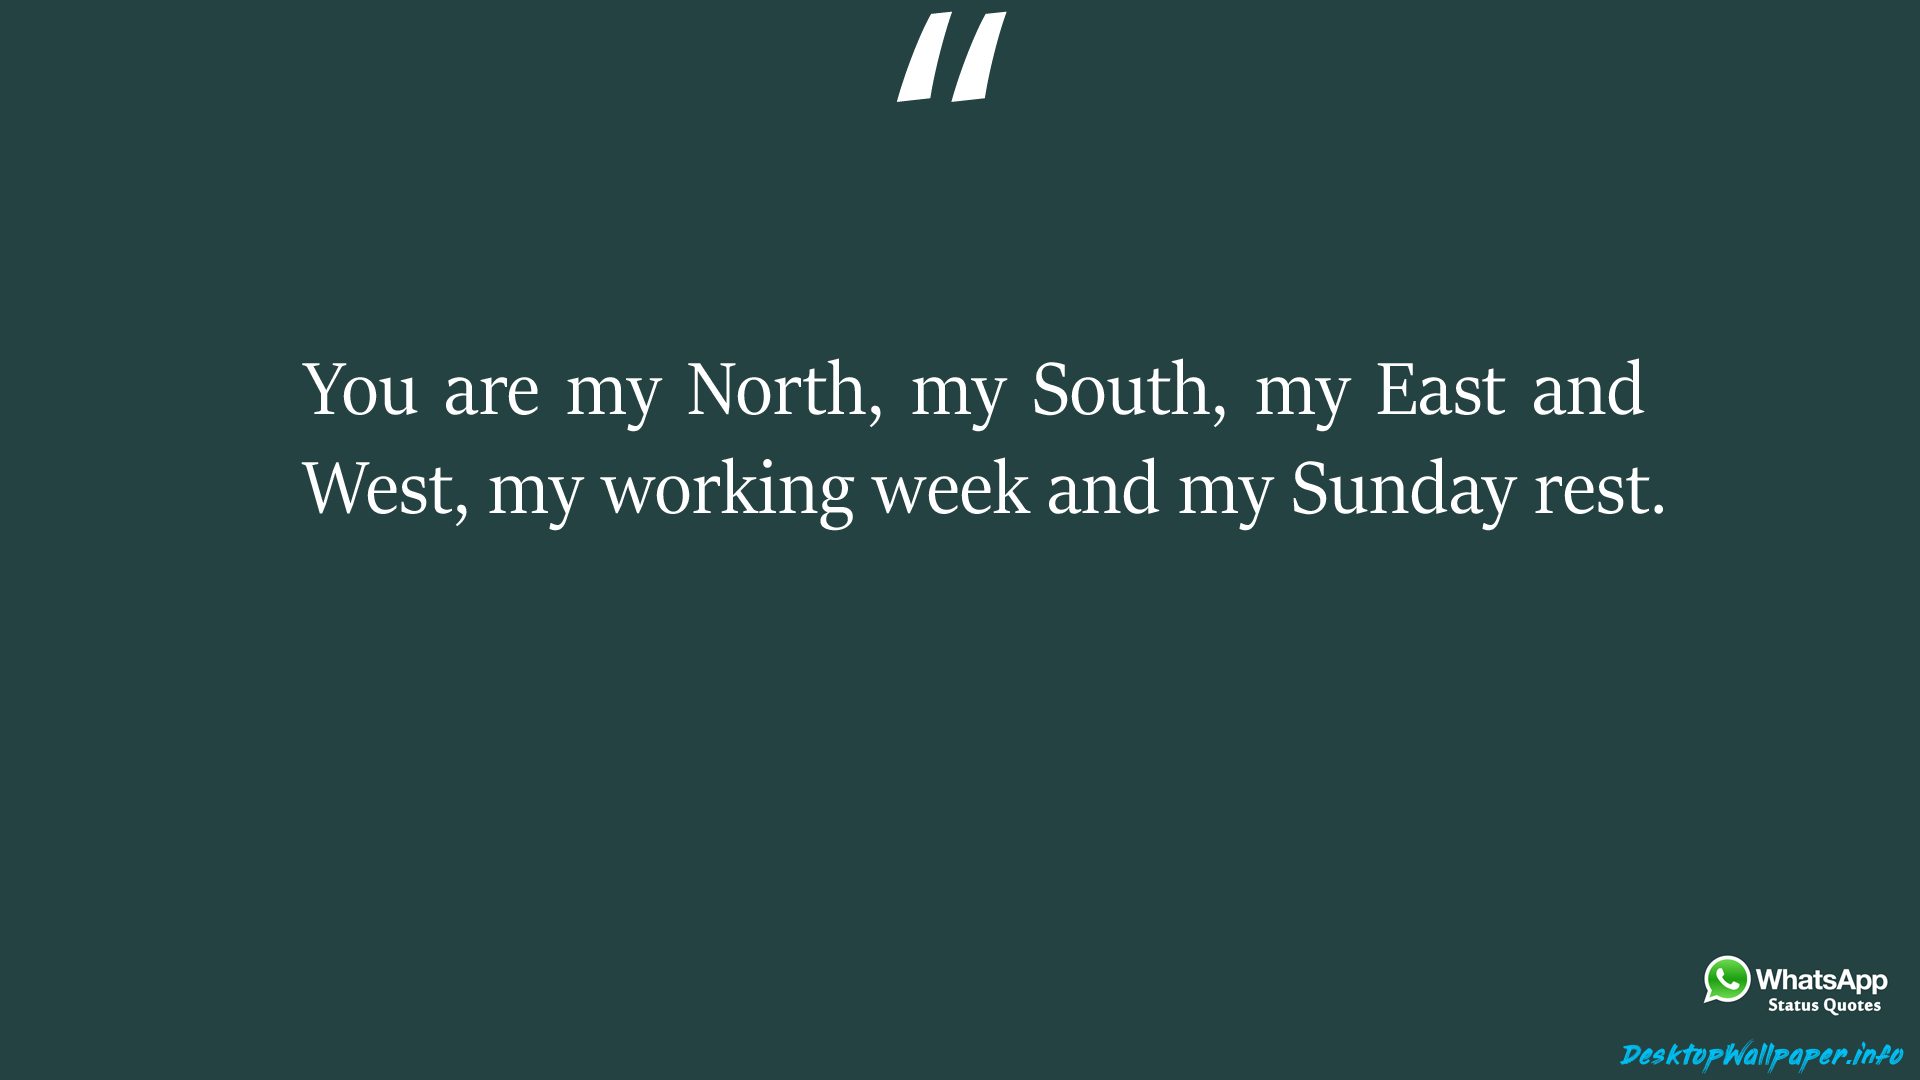 You are my North my South my East and West my